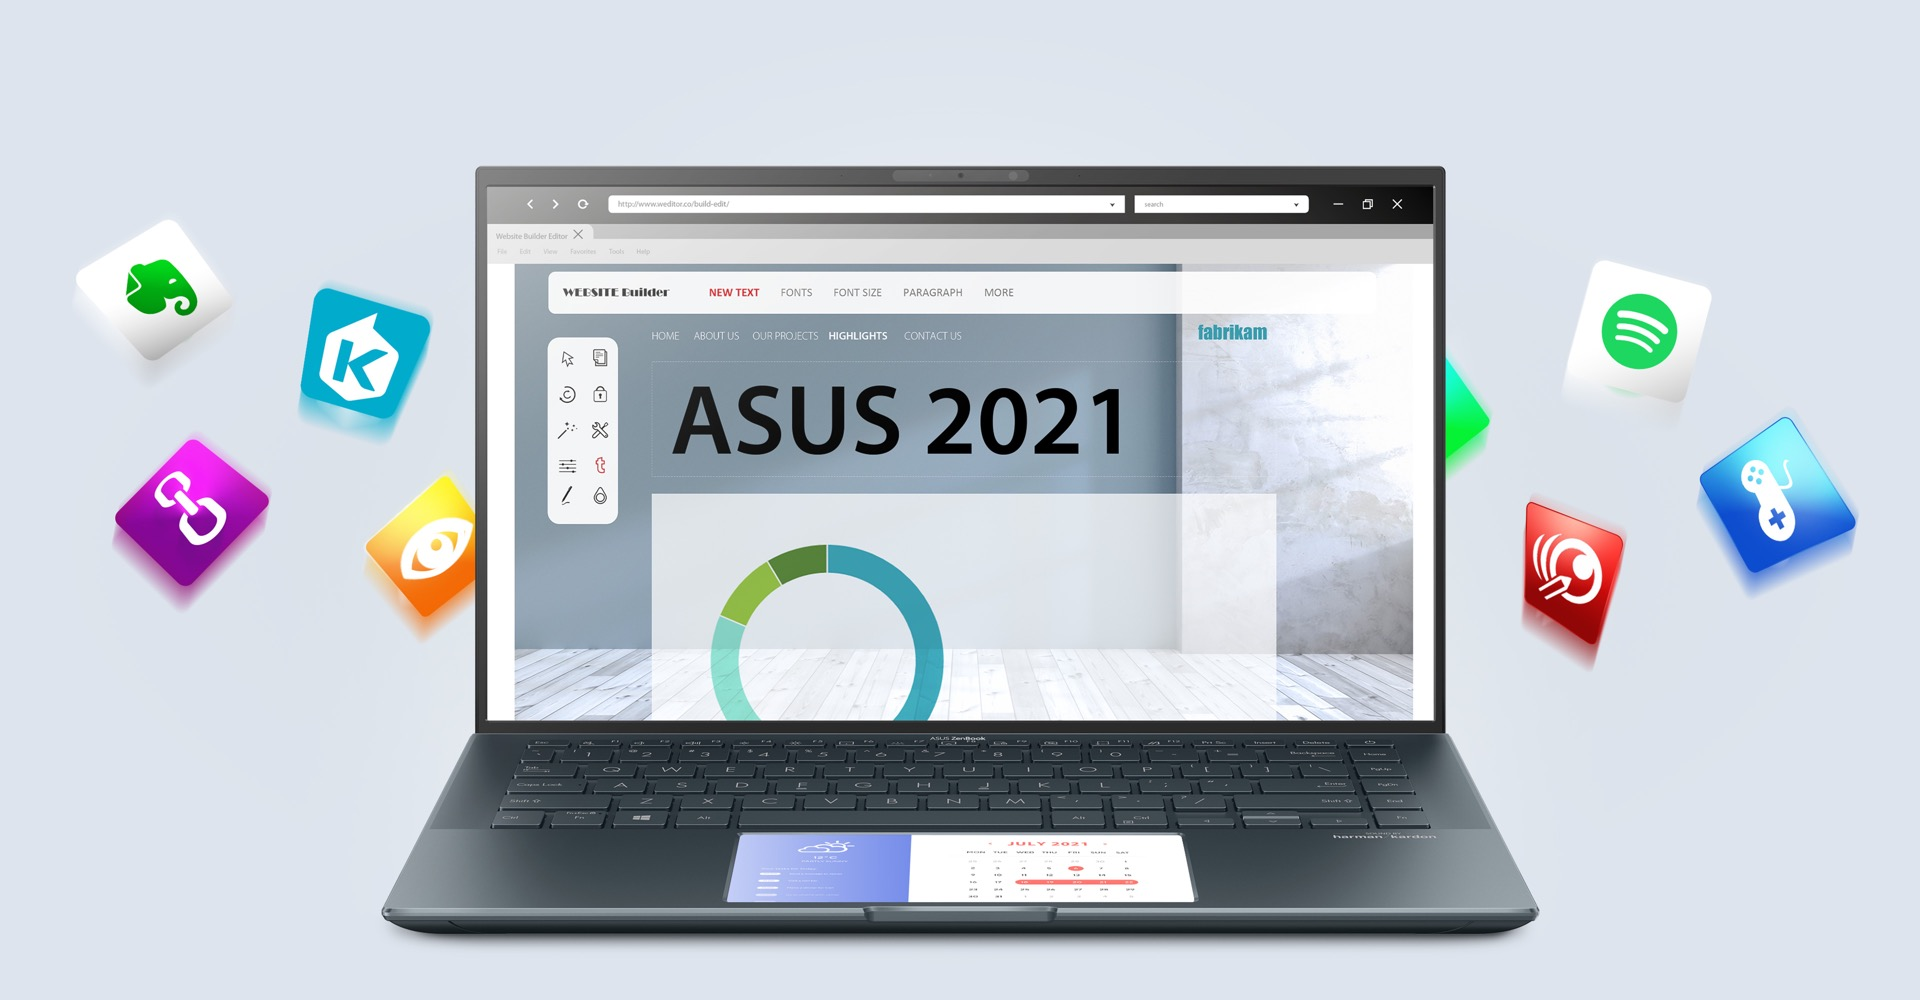 https://dlcdnimgs.asus.com/websites/global/products/mpw4fh5ouhgwkymj/v2/features/images/large/1x/s3.jpg